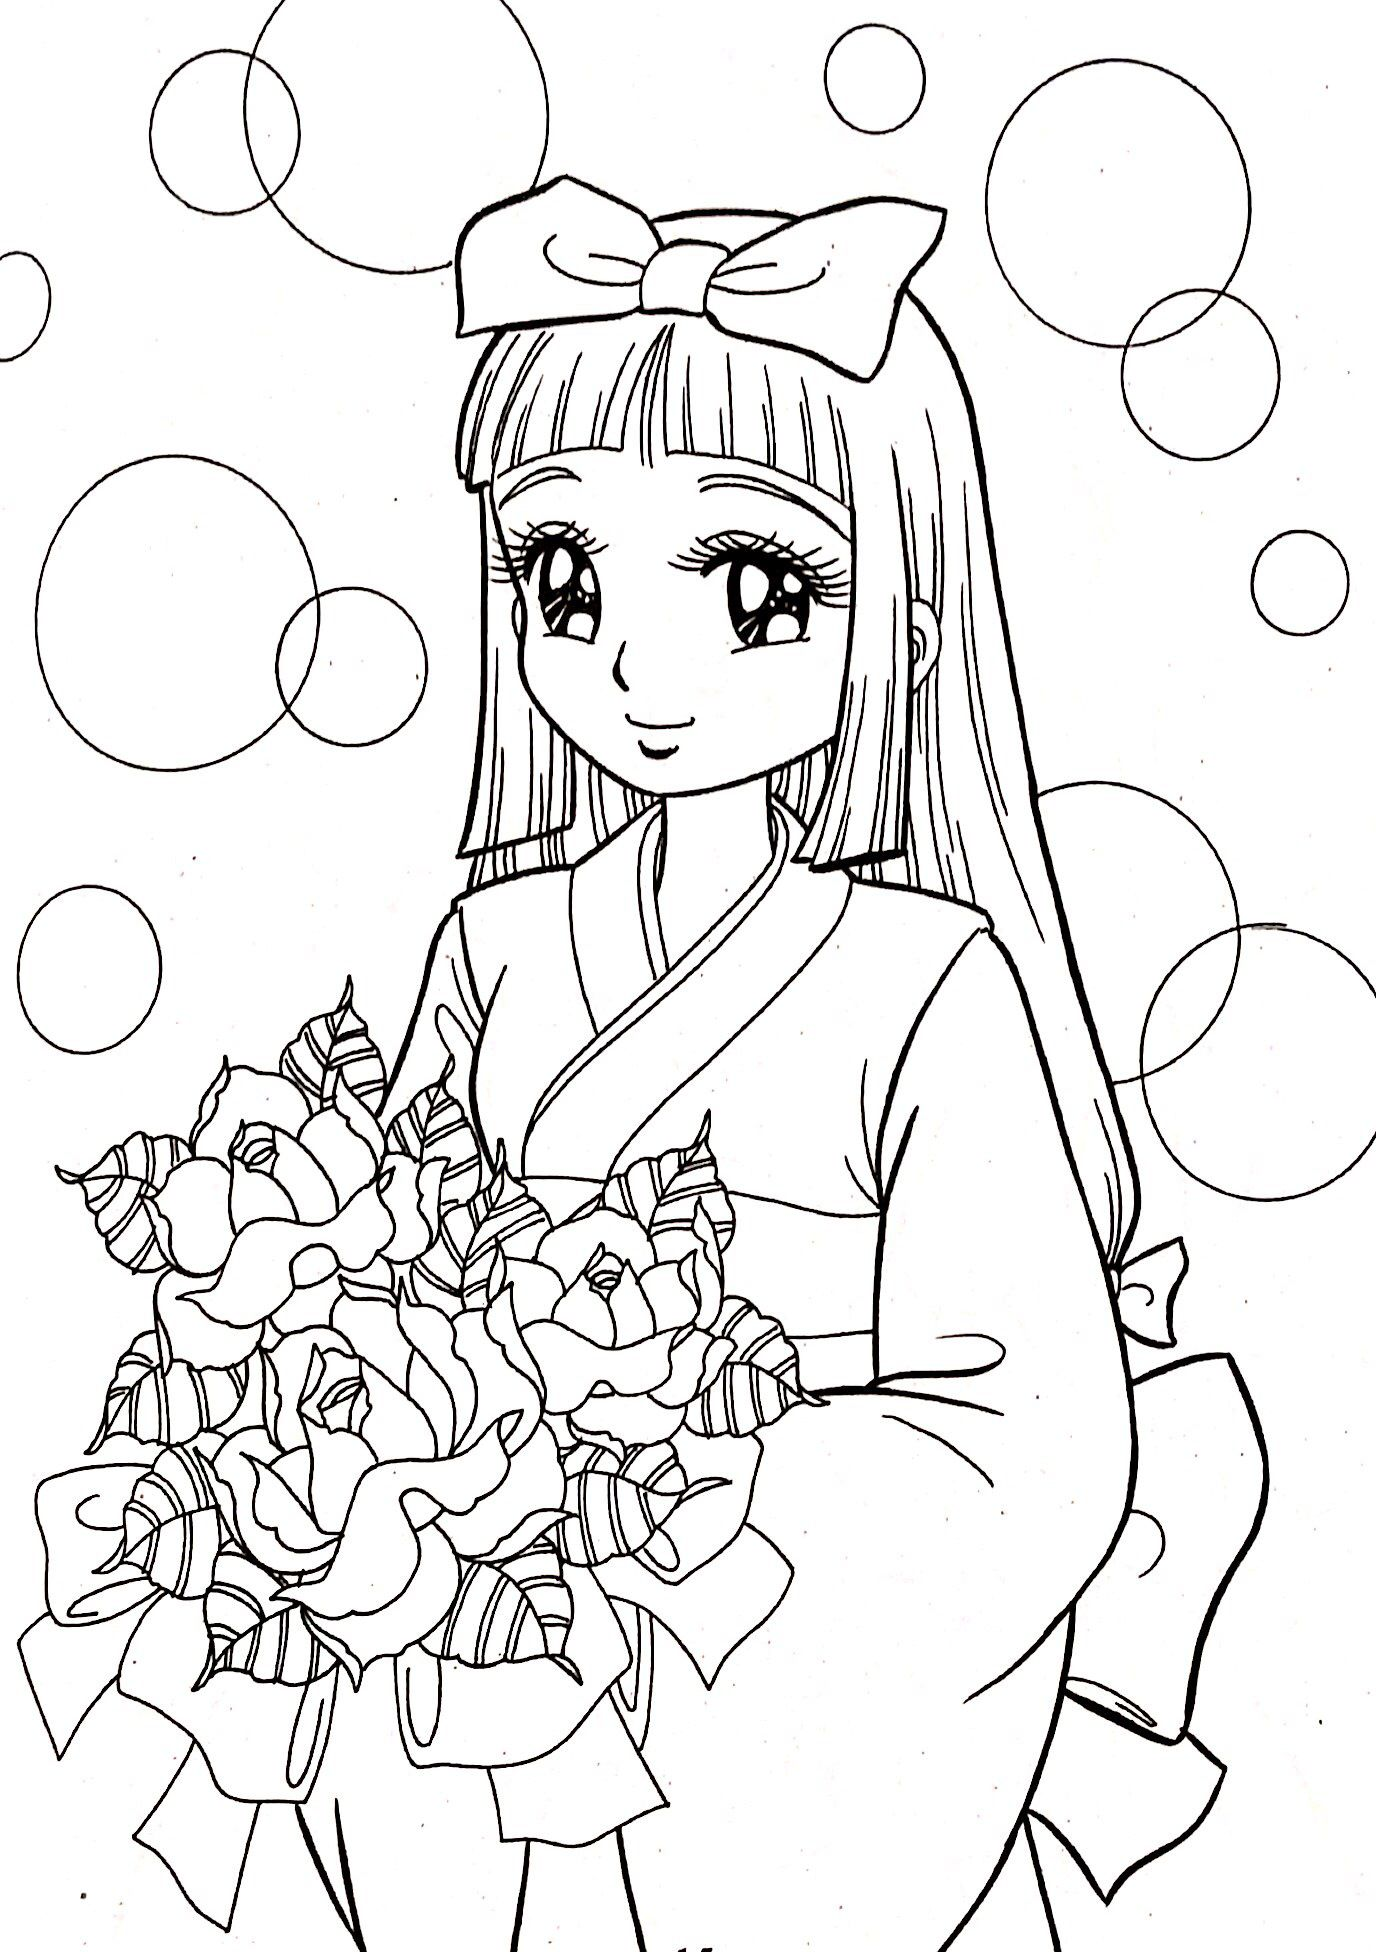 Coloring Sailor Moon Coloring Pages Manga Coloring Book Cute Coloring Pages